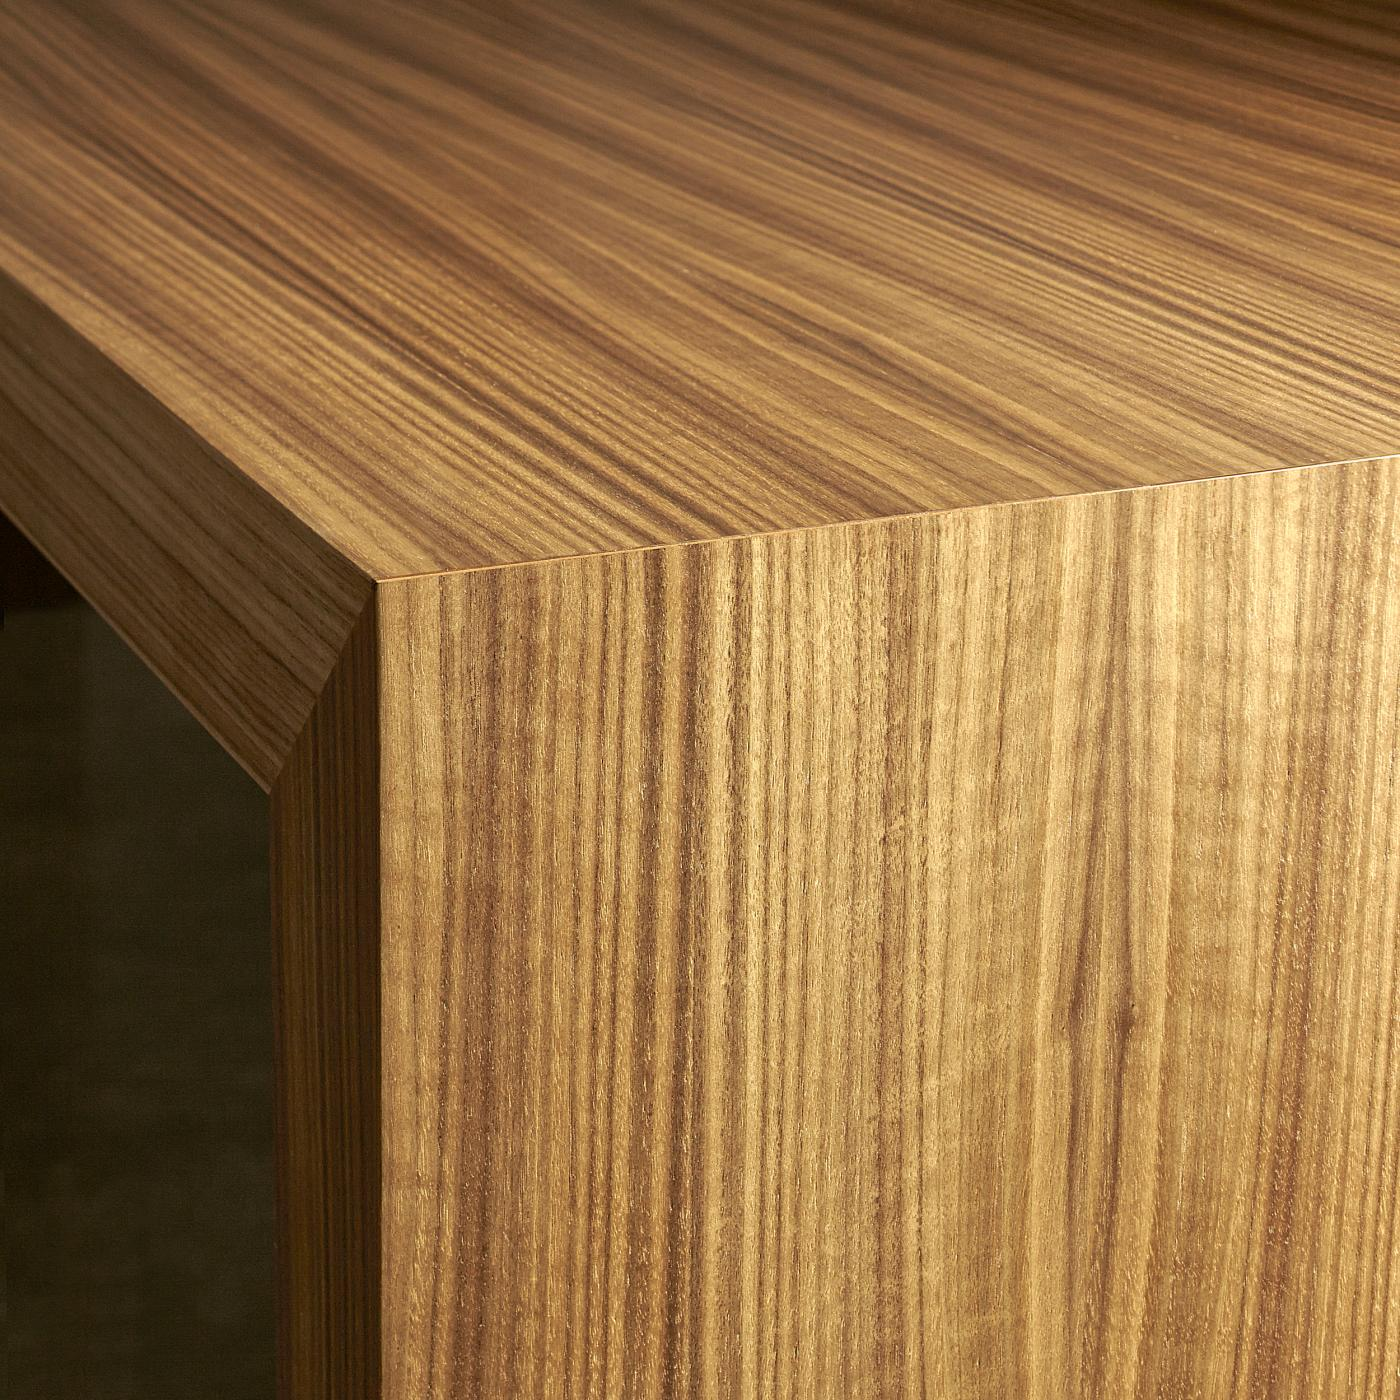 Hugo offers perfectly mitered joinery with matched veneers.